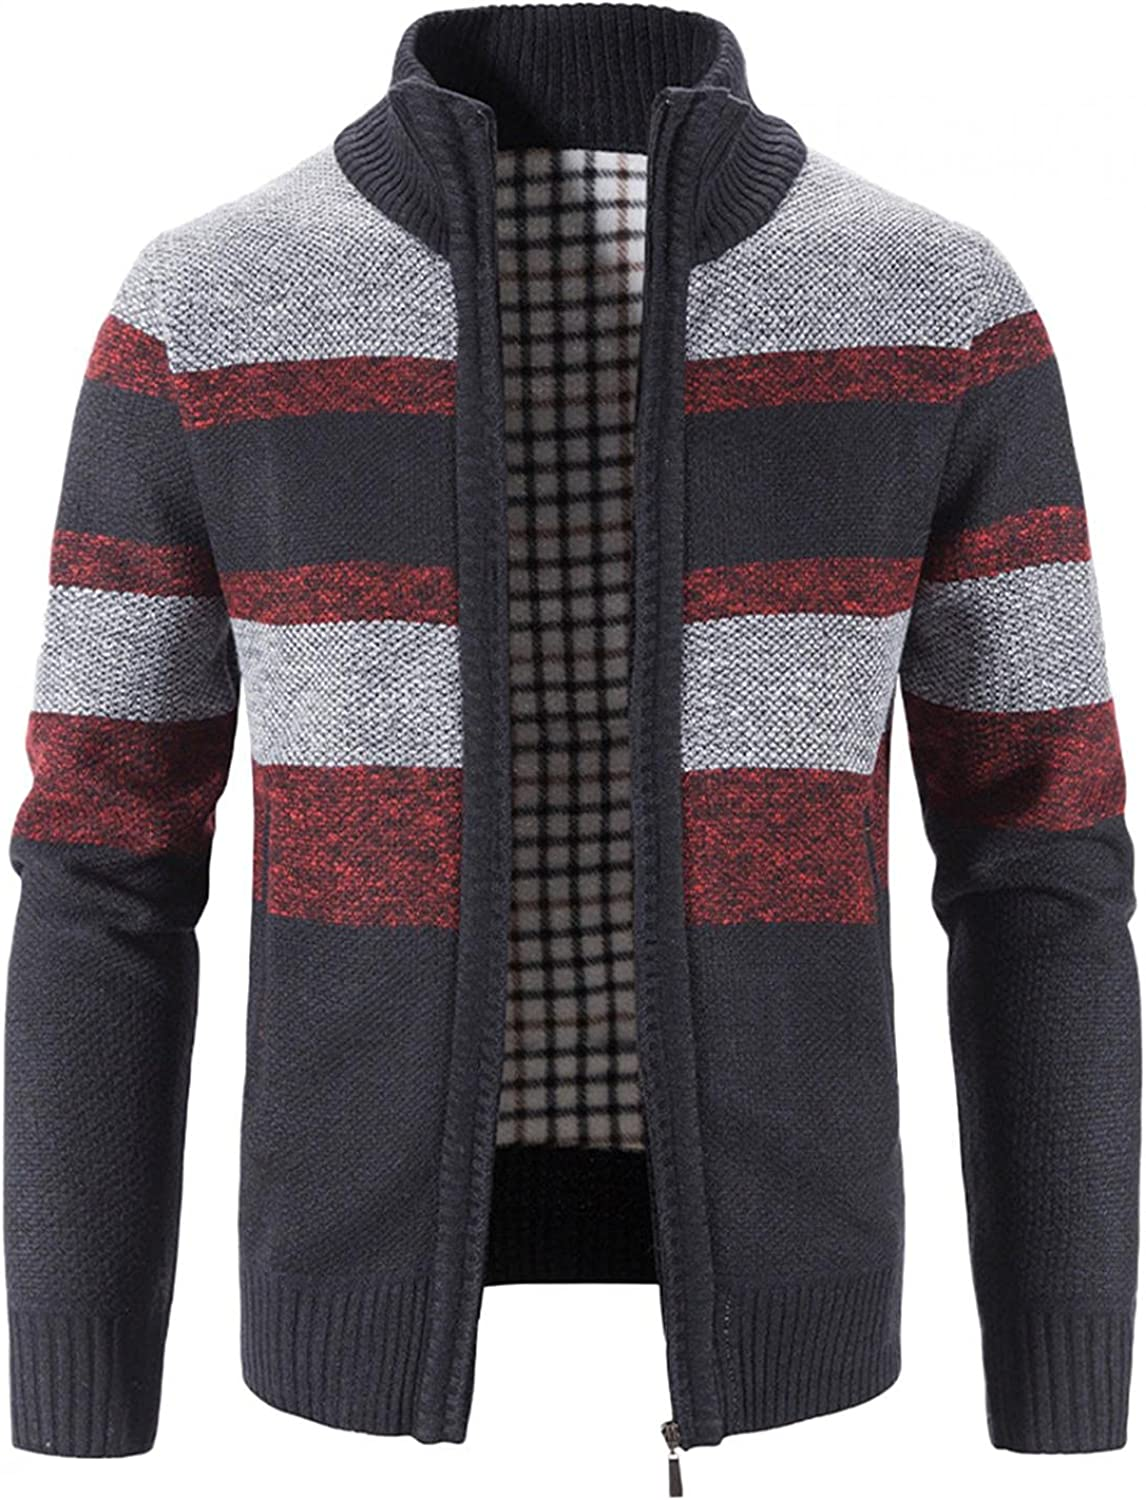 Men's Knit Jacket Coat Trench Cardigan Long Sleeve Outwear Blouse Block Stand Collar Warm Blouse